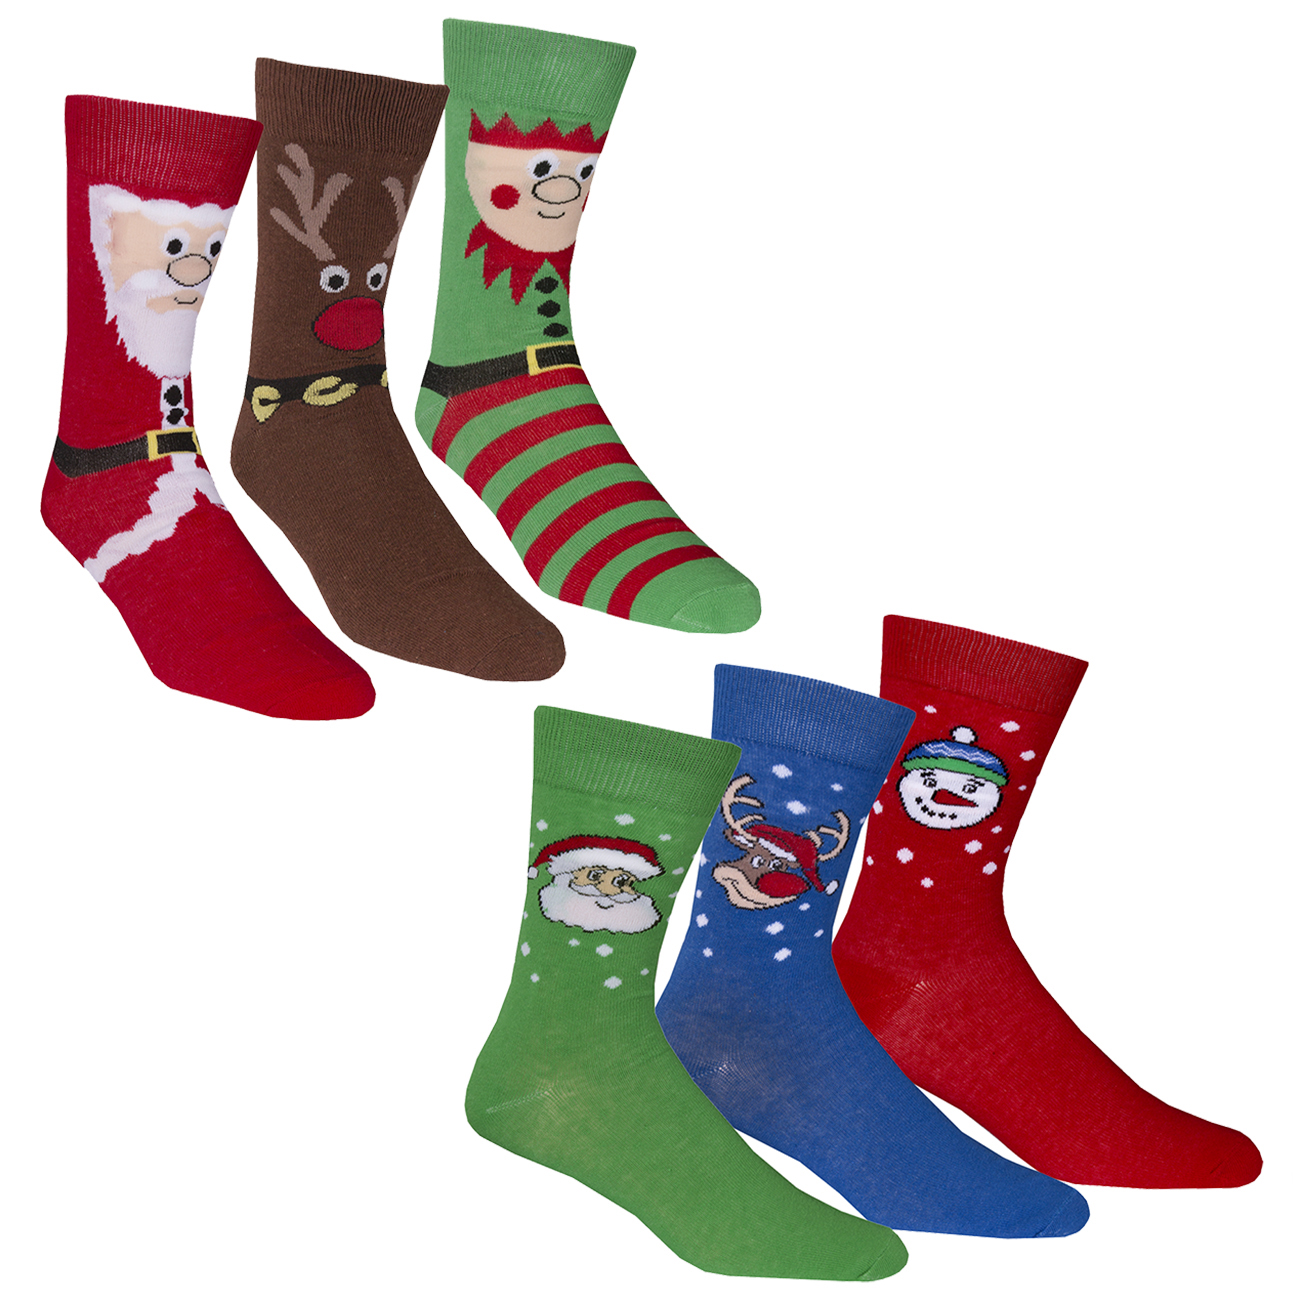 Mens Christmas Socks.Details About Mens Novelty Christmas Socks Xmas Cotton Rich Festive Gift Hosiery 3 6 Pairs New